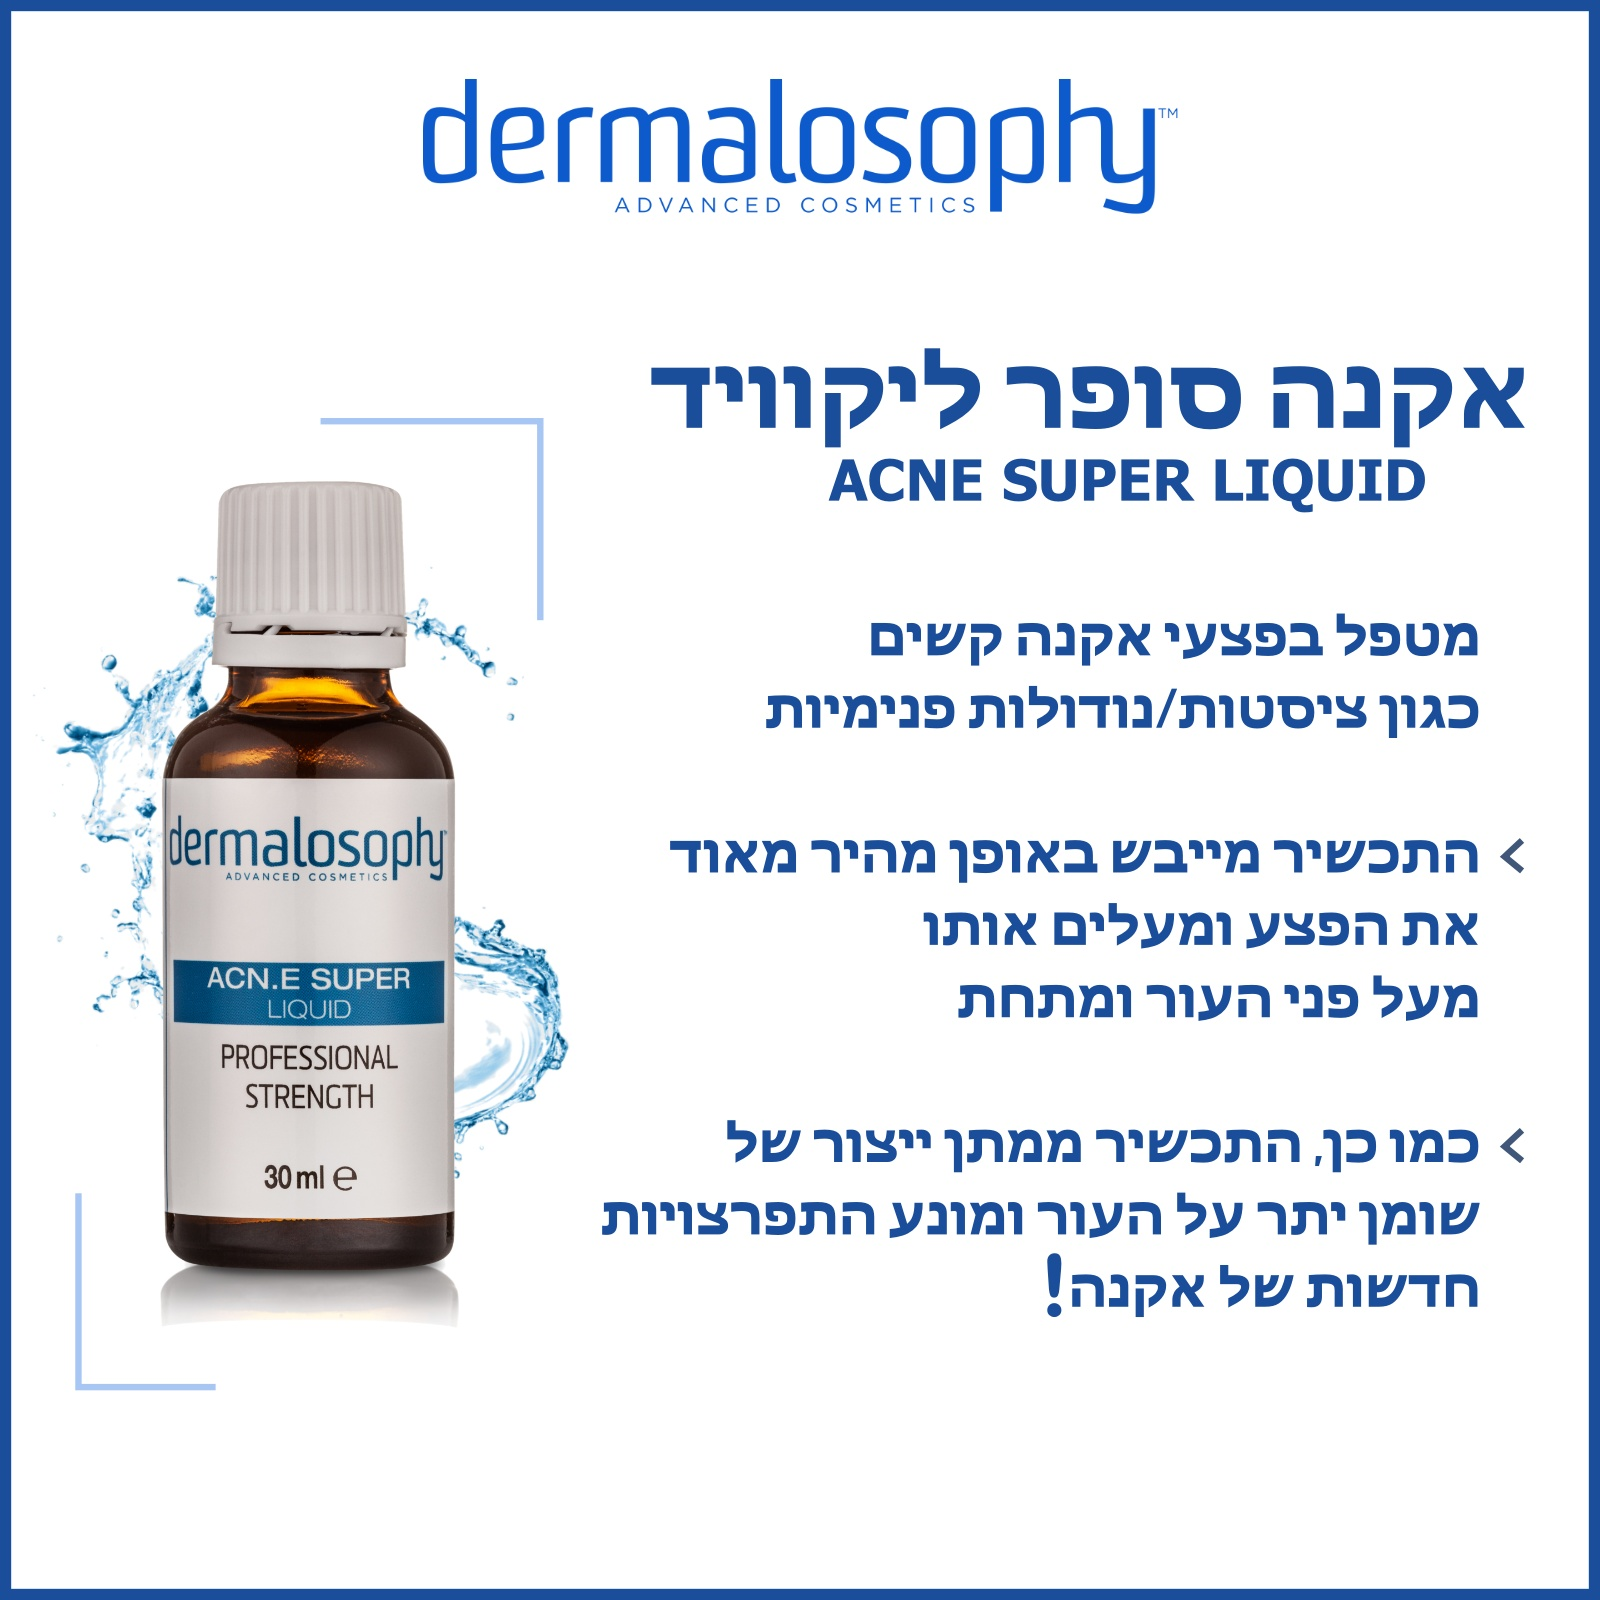 אקנה סופר ליקוויד ACNE SIPER LIQUID לטיפול בפצעים תת עוריים